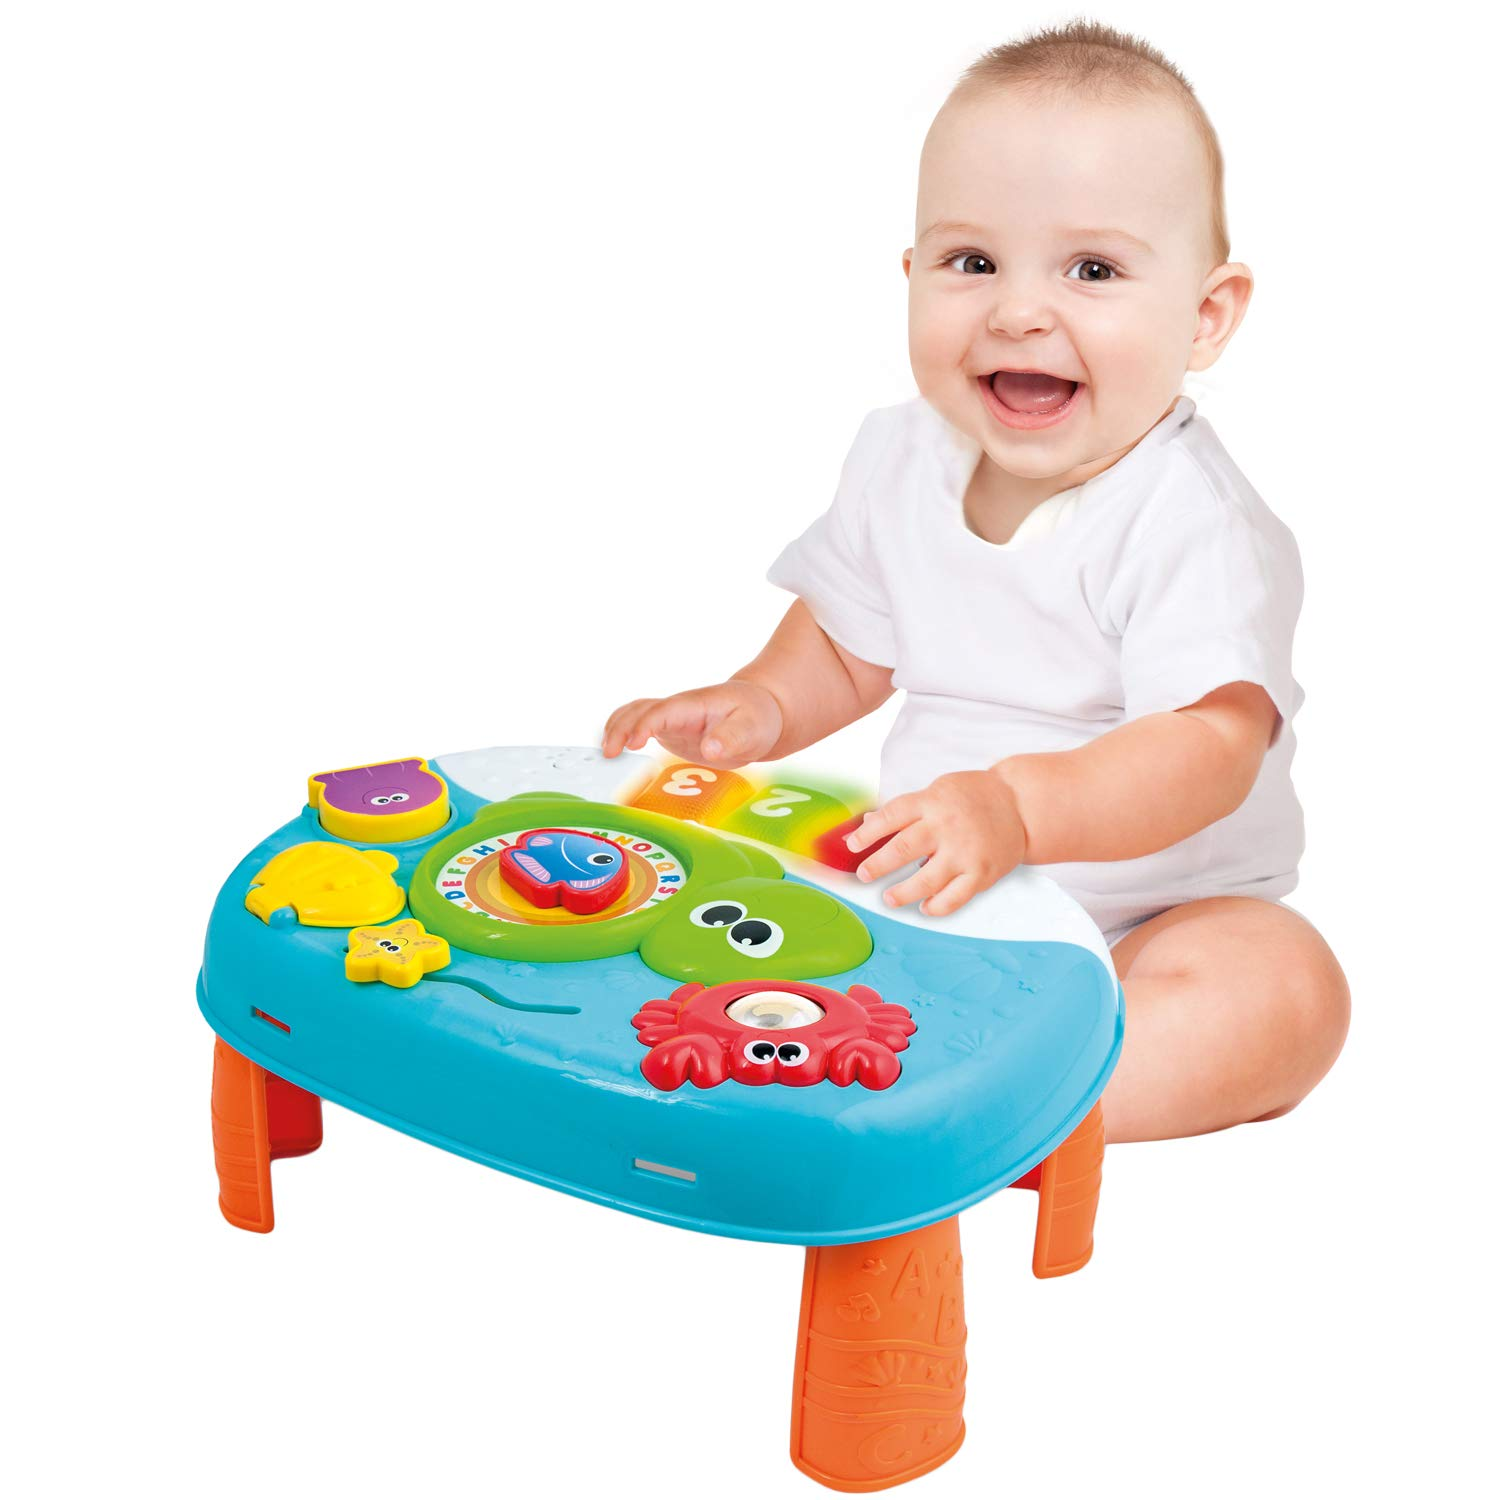 Activity Table for 1 Year Old and Up. 2-in-1 Activity Center for Baby. Interactive Learning Toy Piano and Kids Activity Table with Fun Ocean Characters. Crib Accessories with Detachable Straps